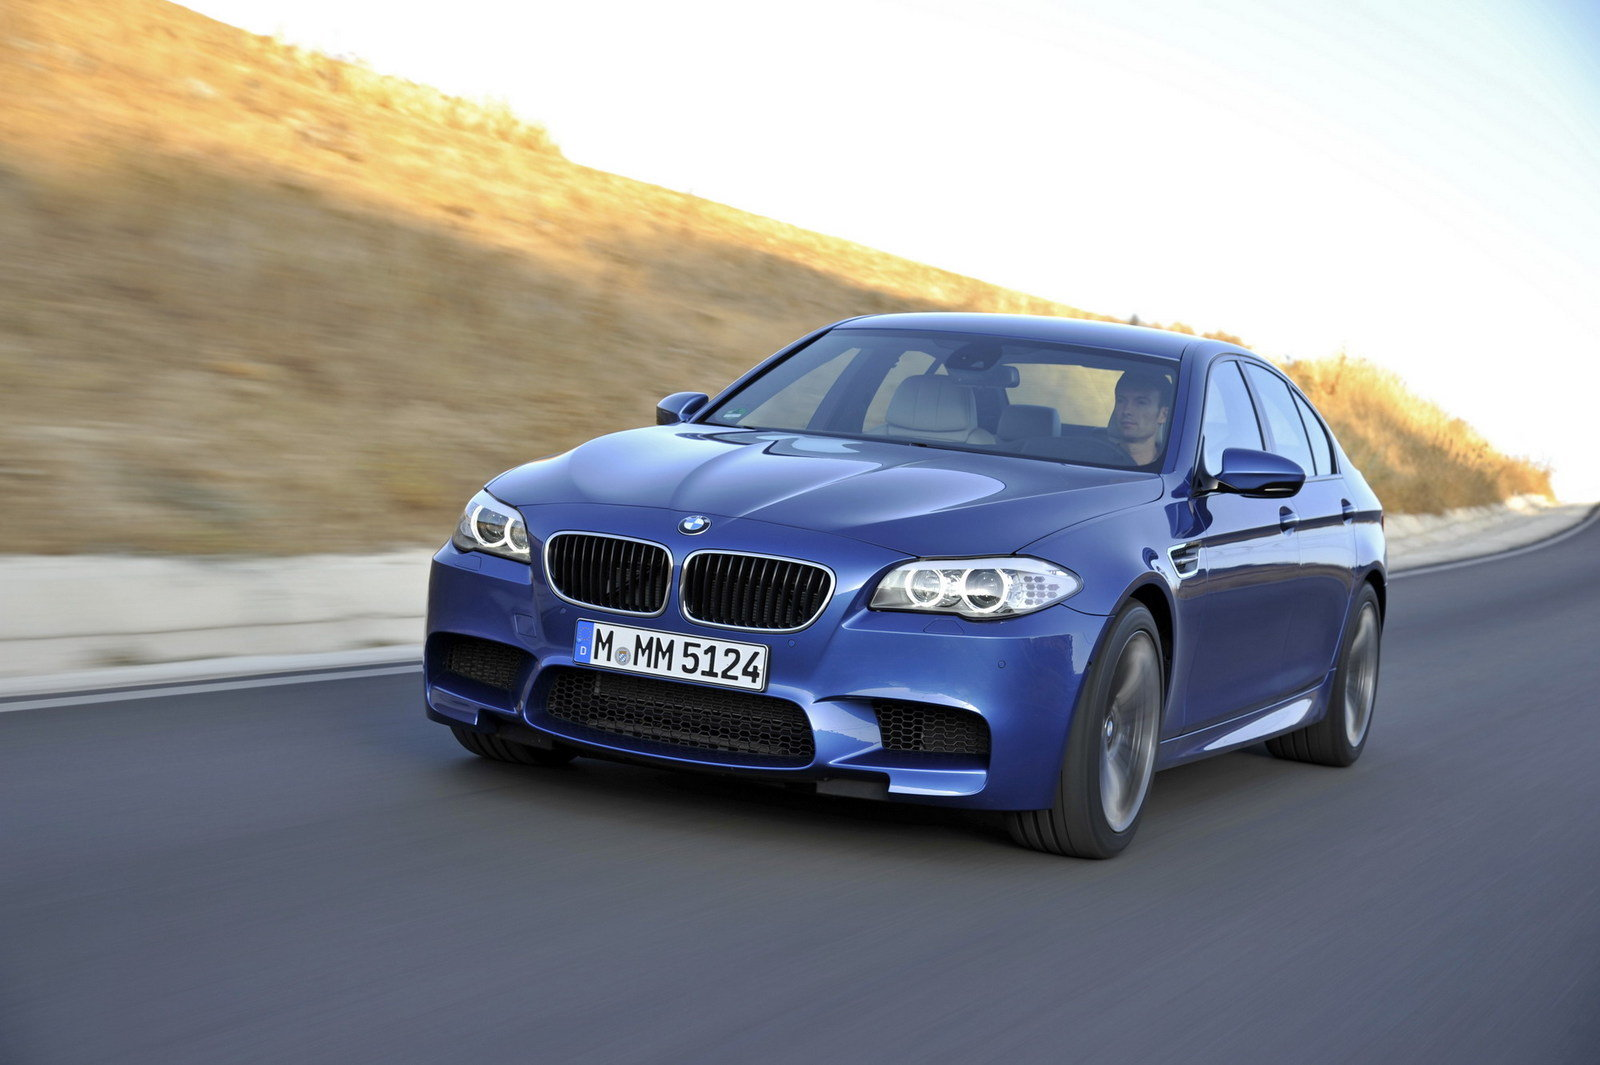 2012 bmw m5 picture 418140 car review top speed. Black Bedroom Furniture Sets. Home Design Ideas